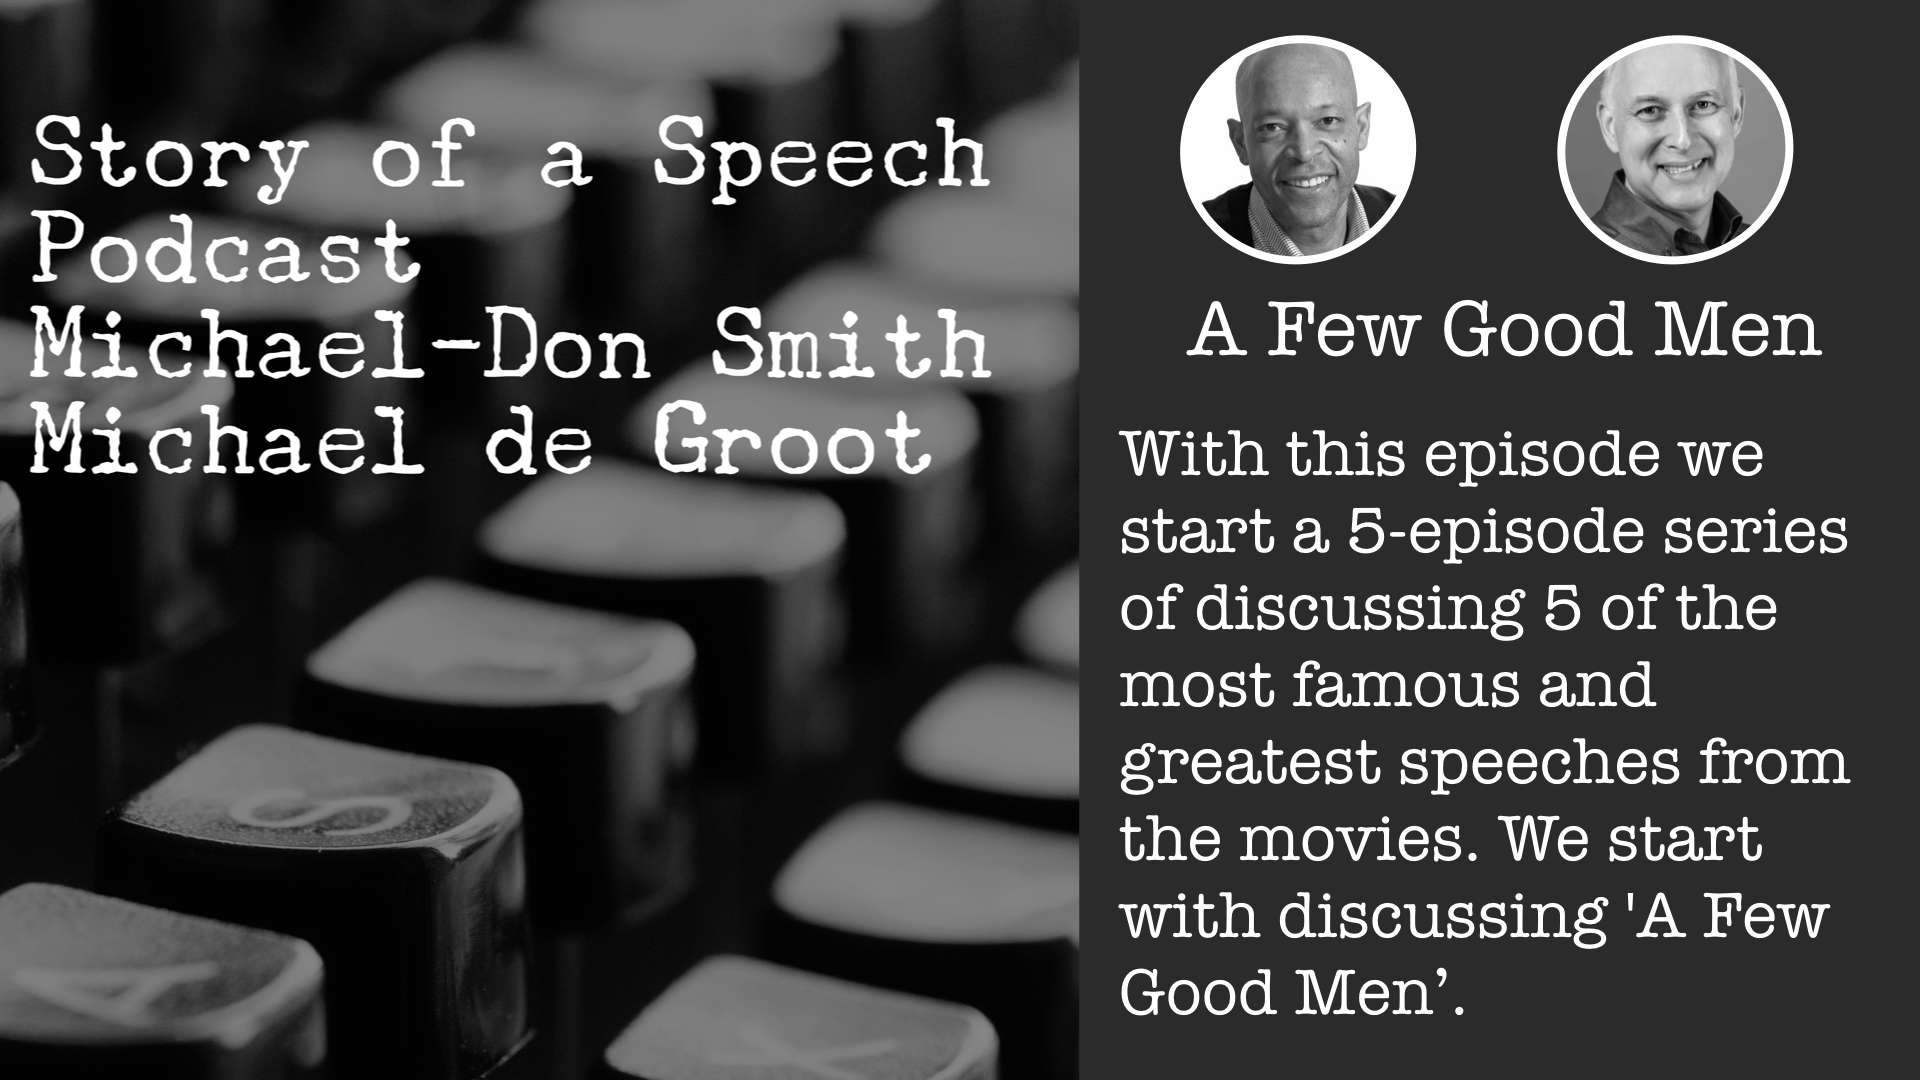 Story of a Speech Podcast - A Few Good Men.jpeg